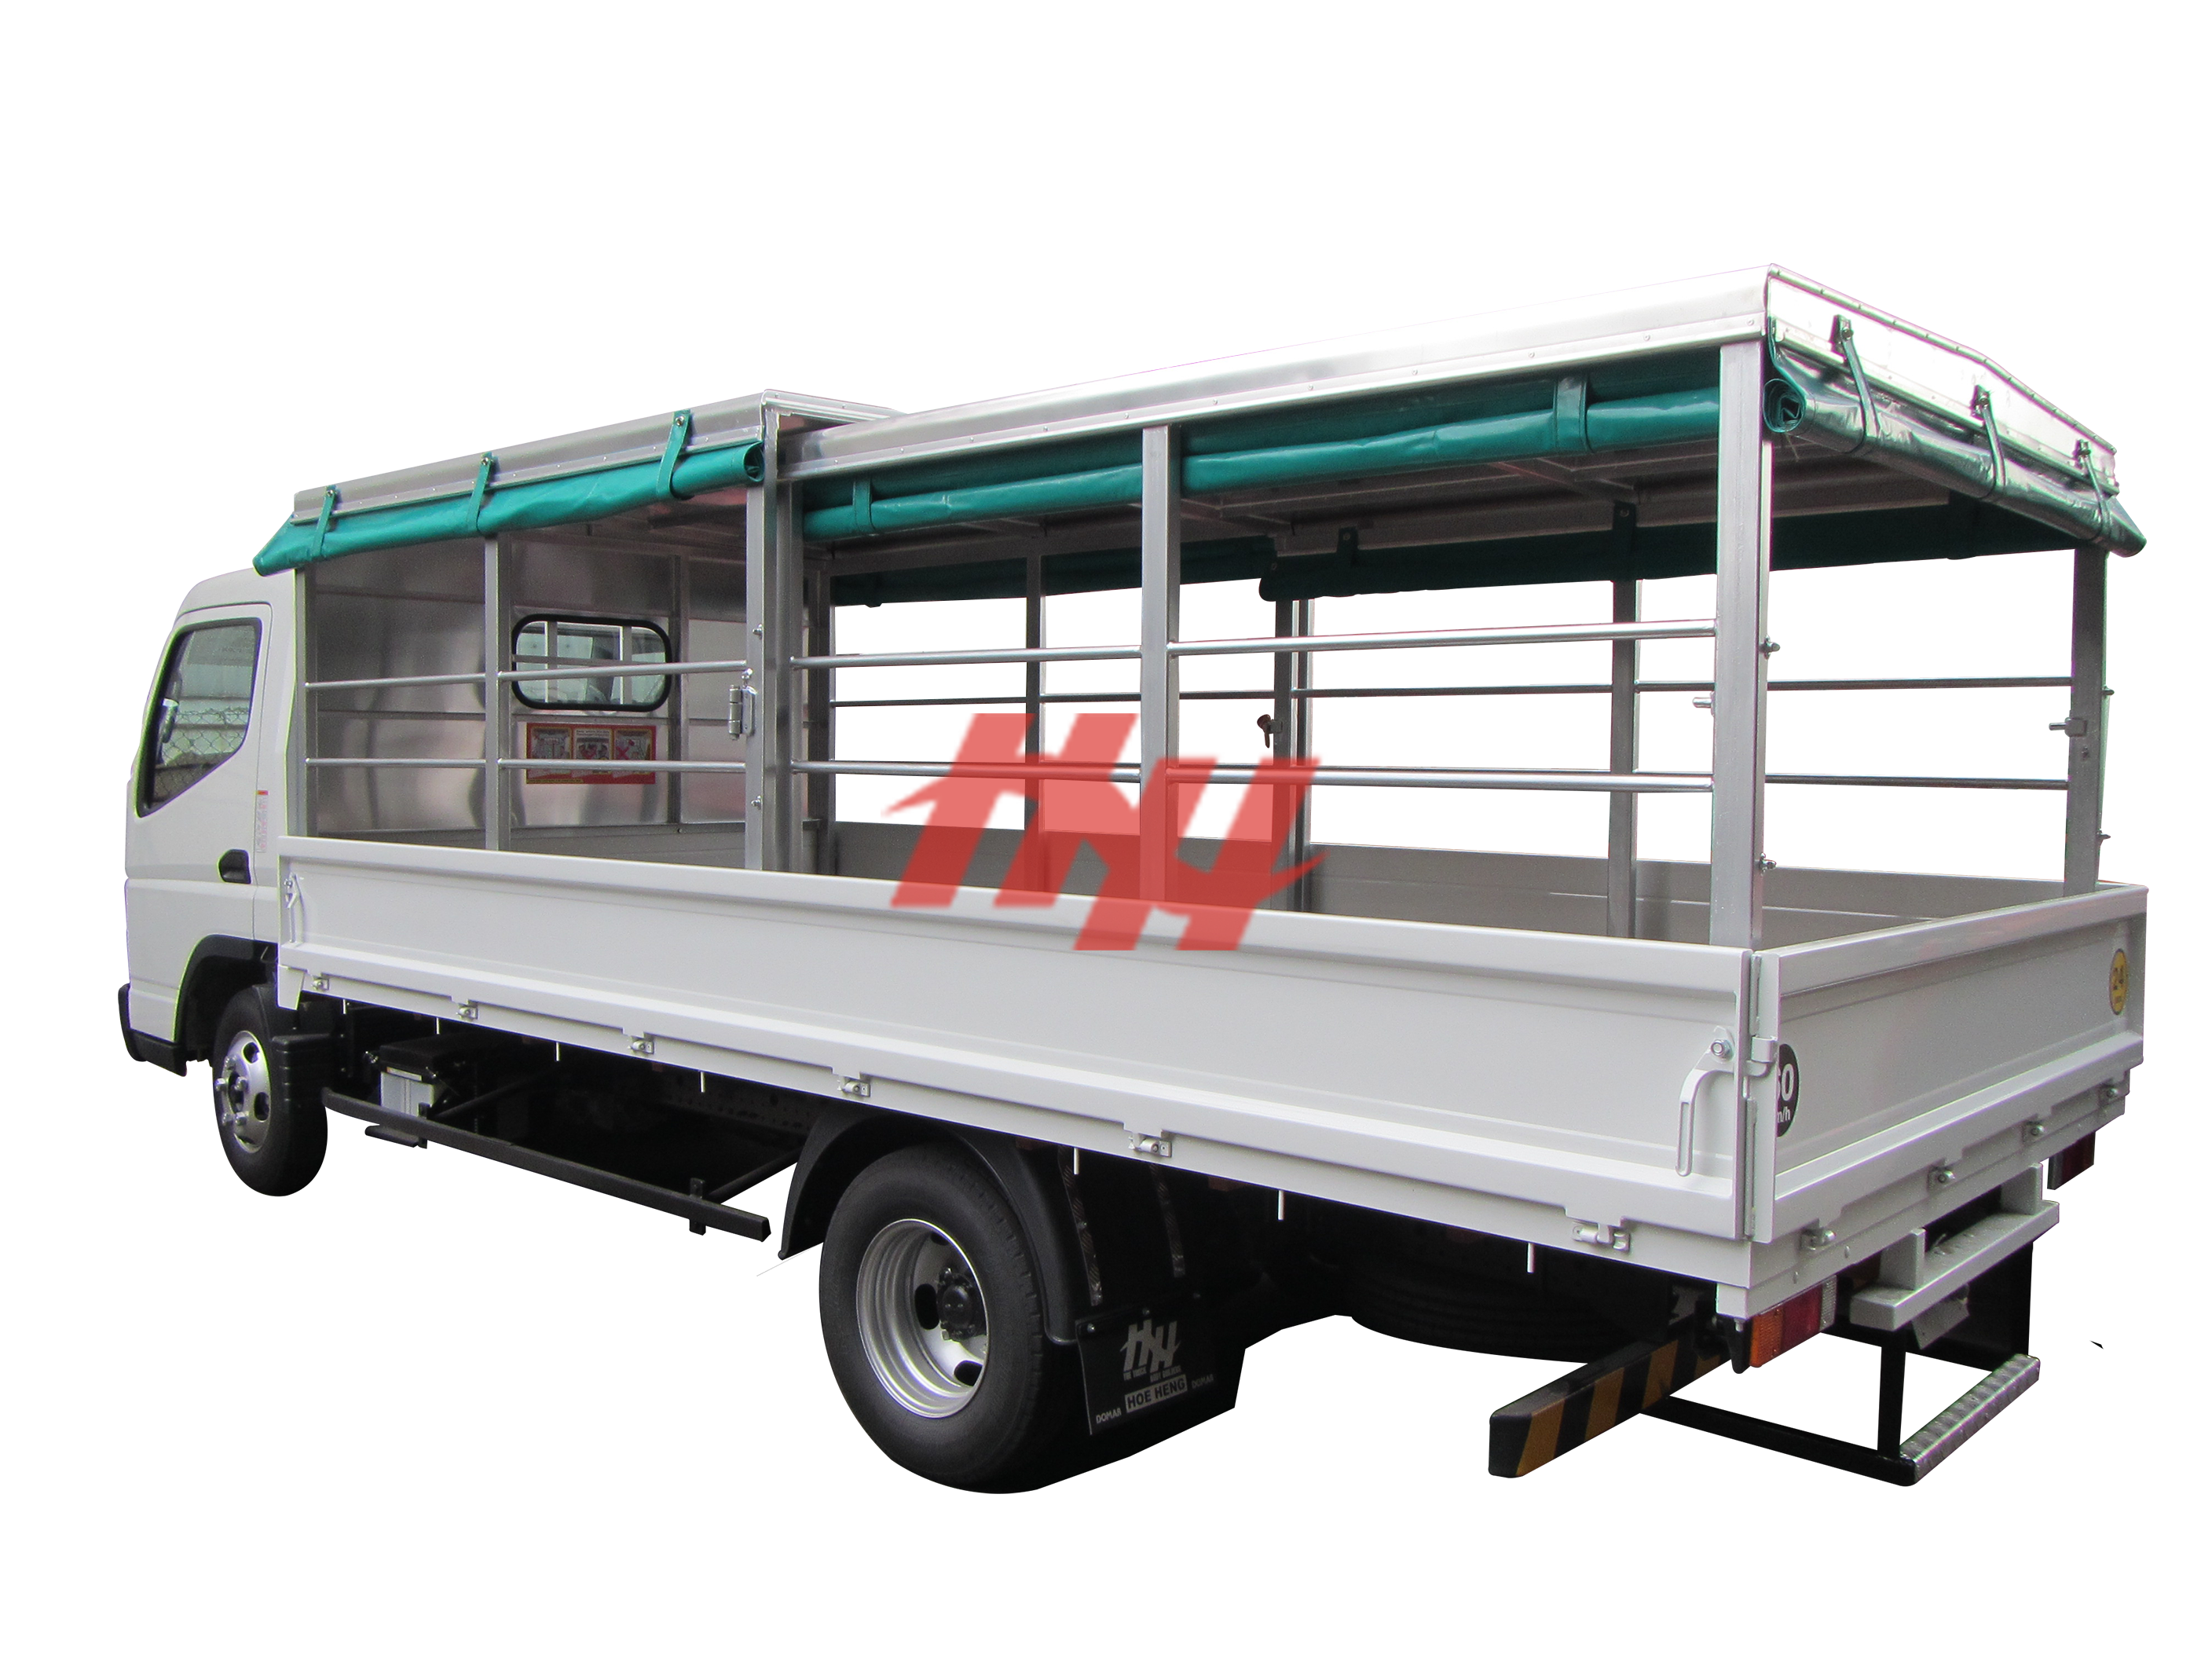 Steel body  retractable canopy with roll down canvas and steel railing edit